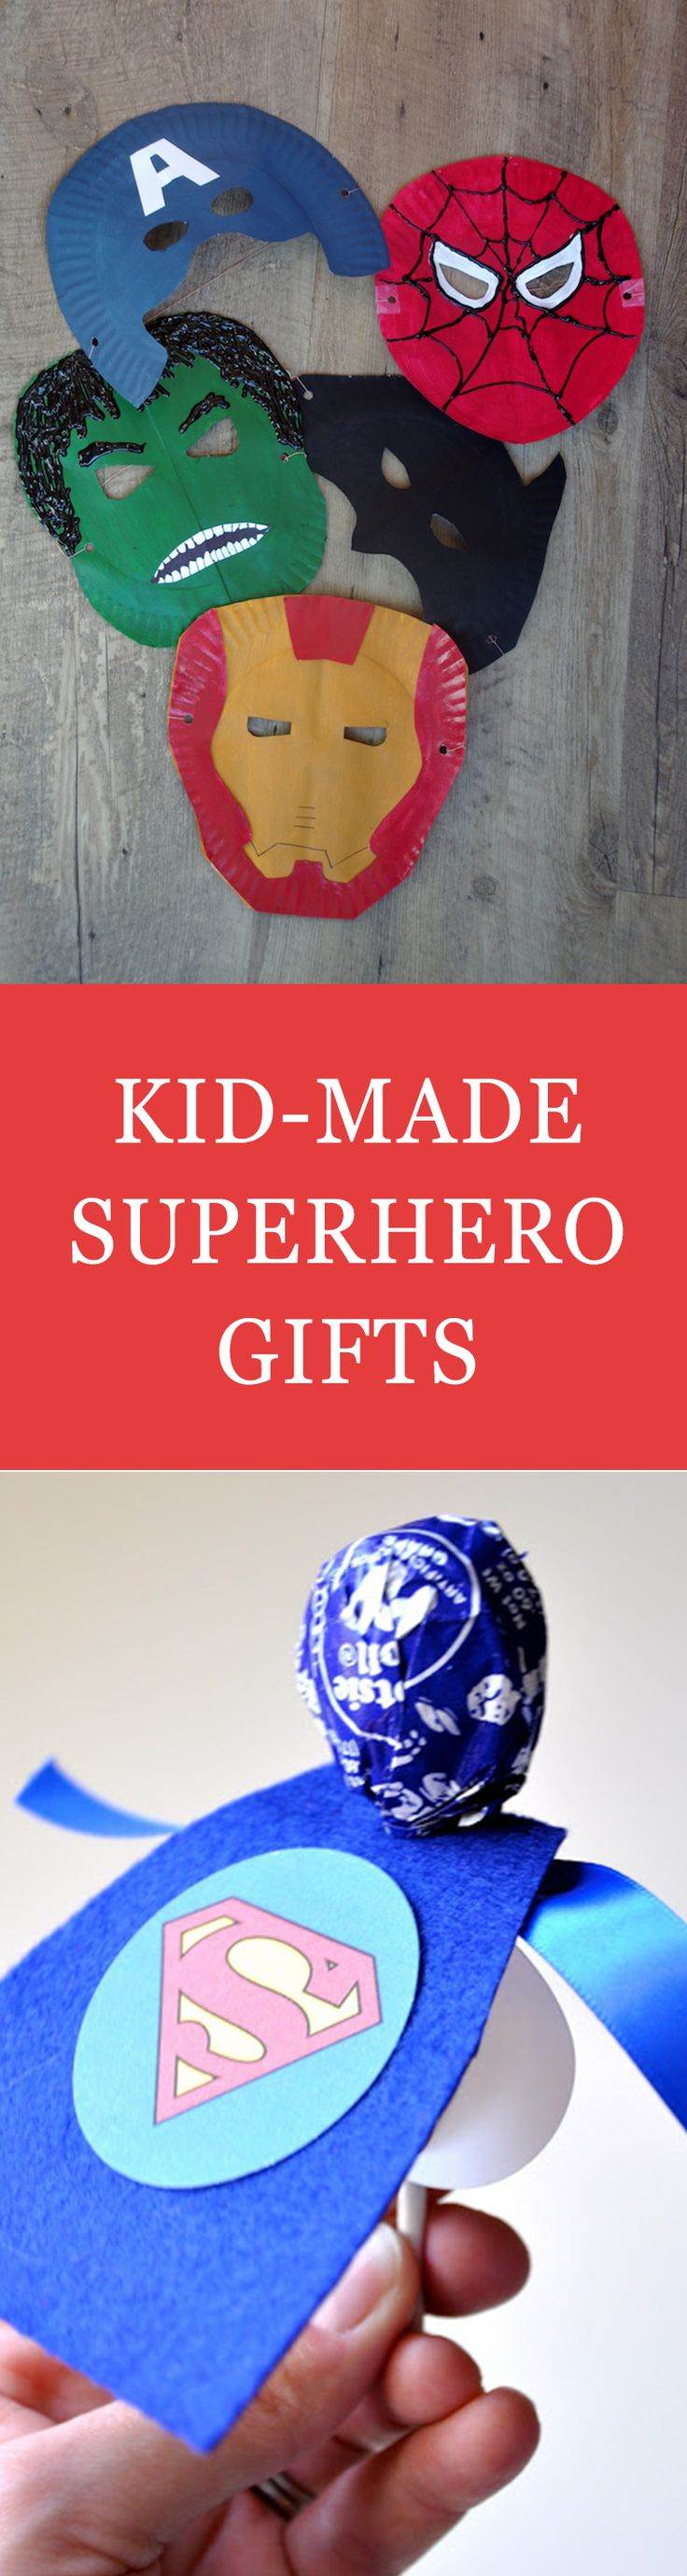 For Father's Day this year, help your little ones make their dad feel like the superhero he is. You can't go wrong with these easy and fun DIY gifts for dad. It's the perfect excuse to make him feel special. Click for a list of superhero kid-made Father's Day gifts.